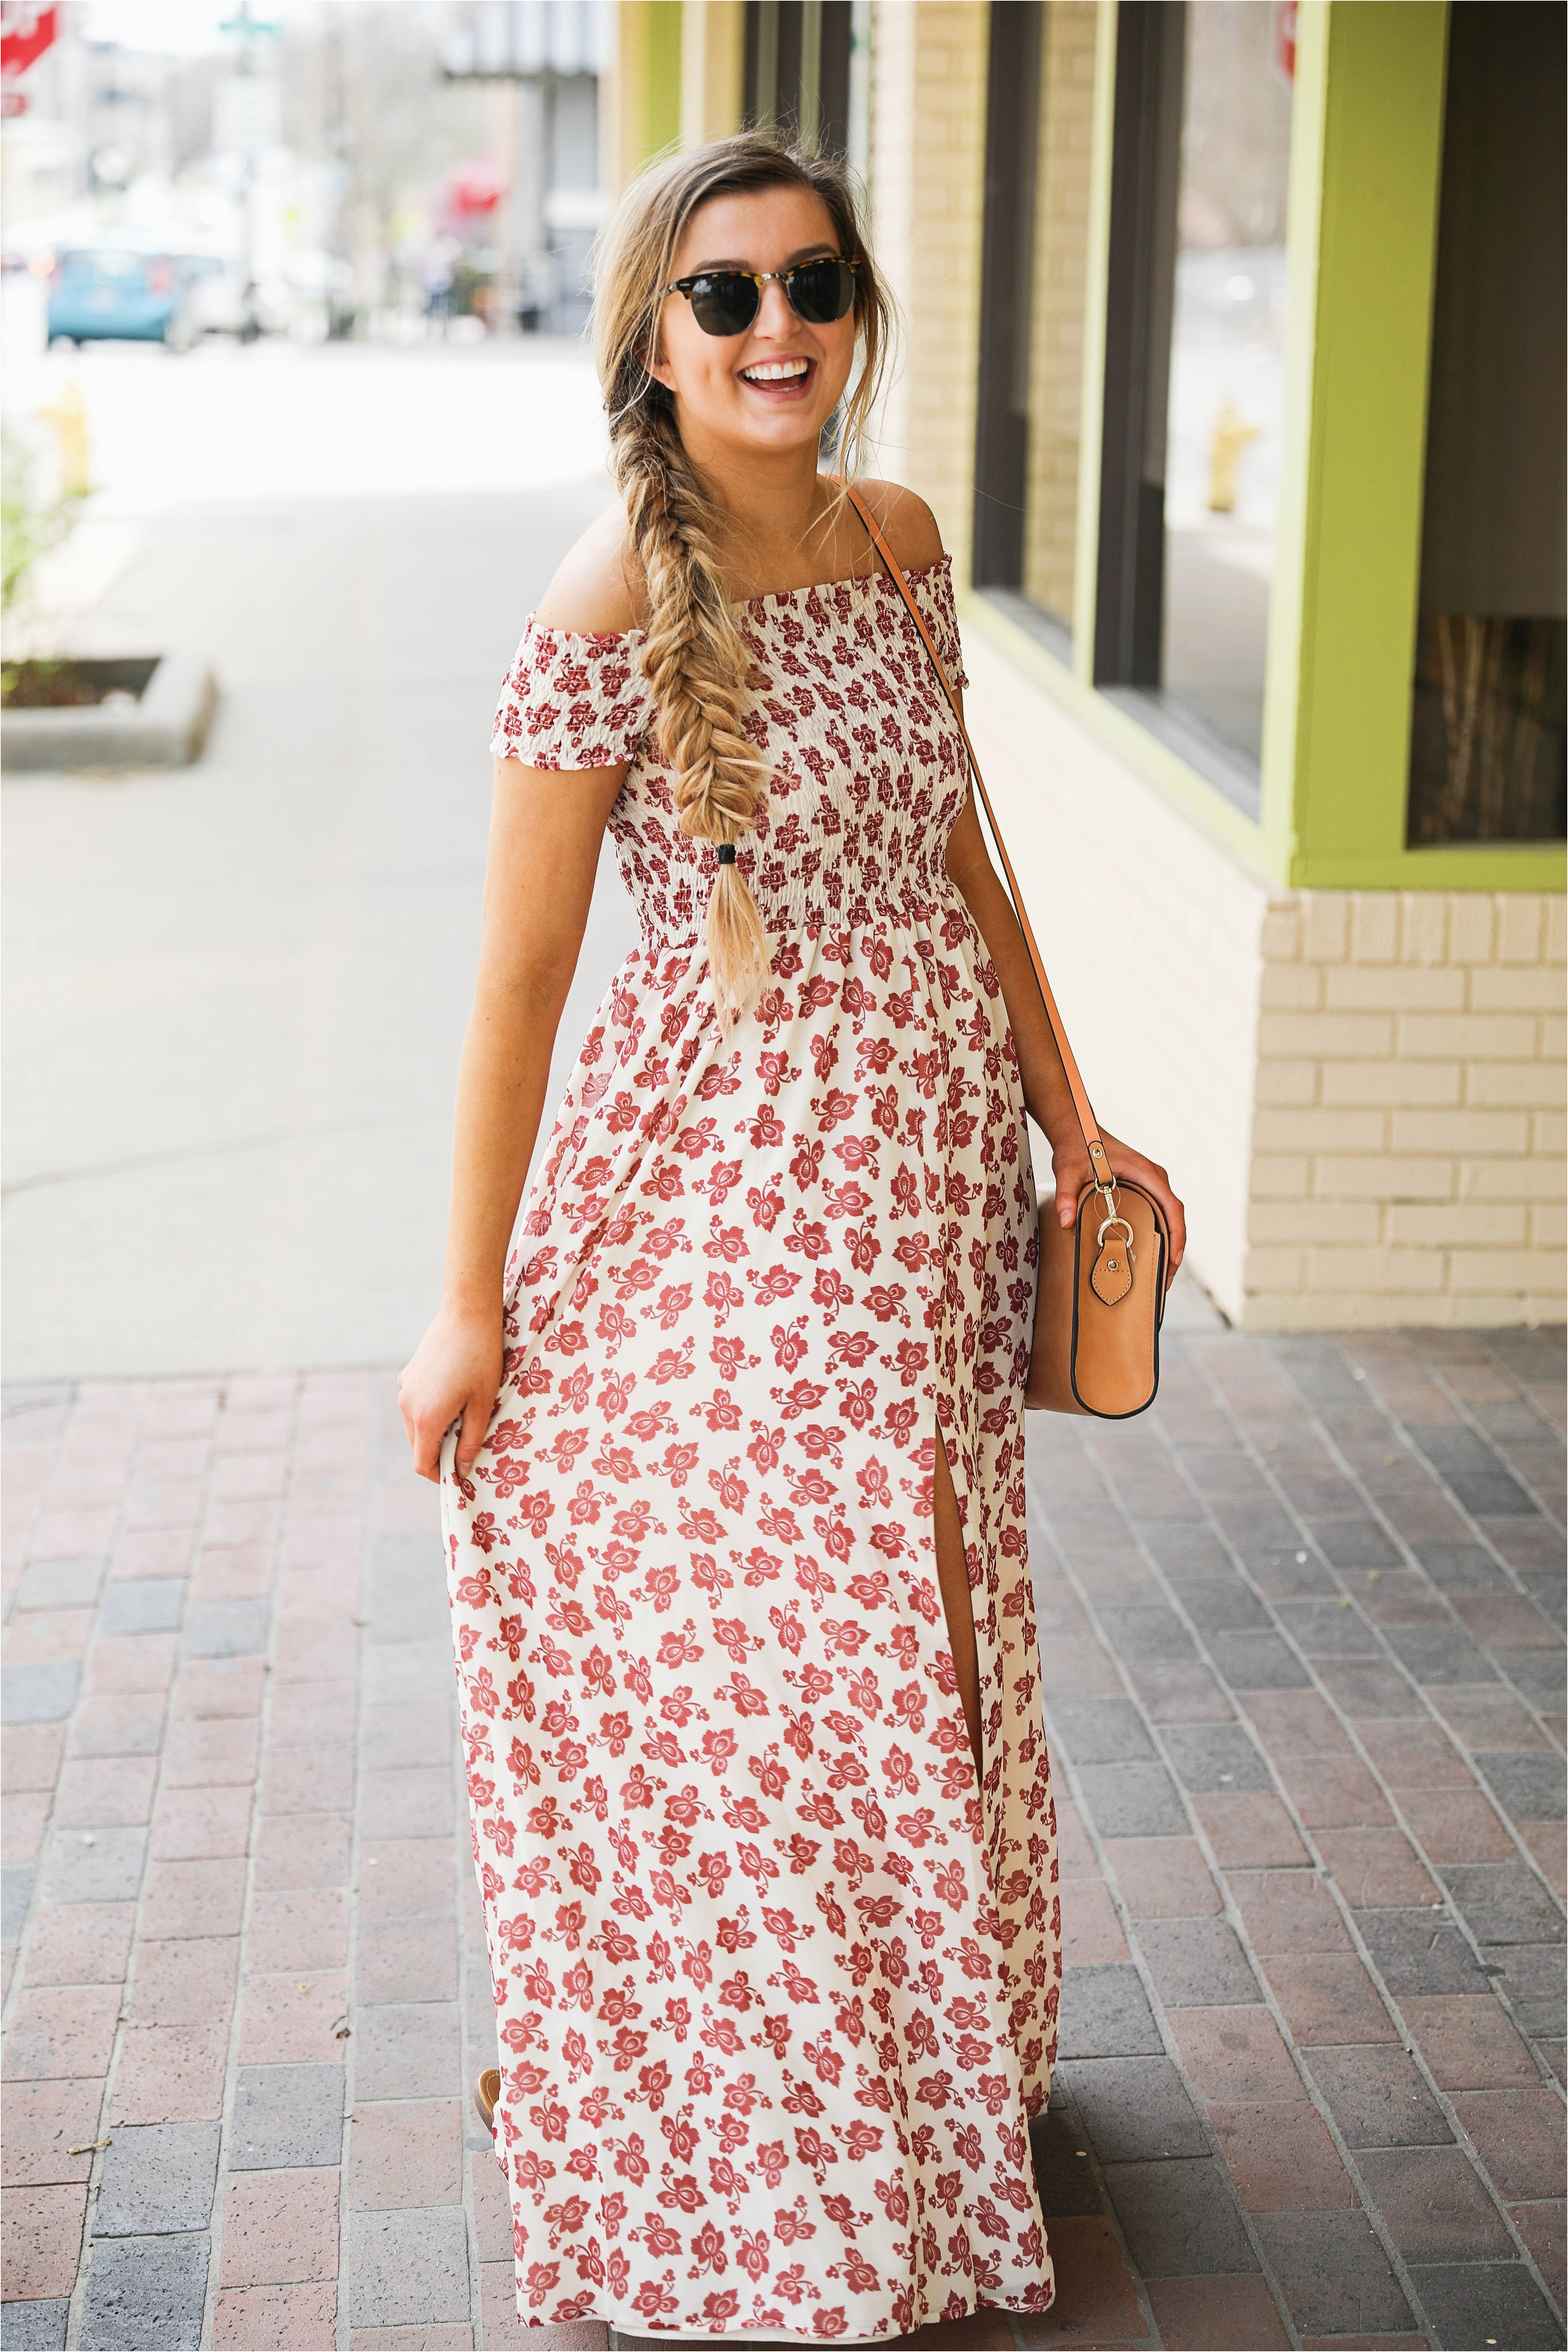 20th birthday dress ootd daily dose of charm